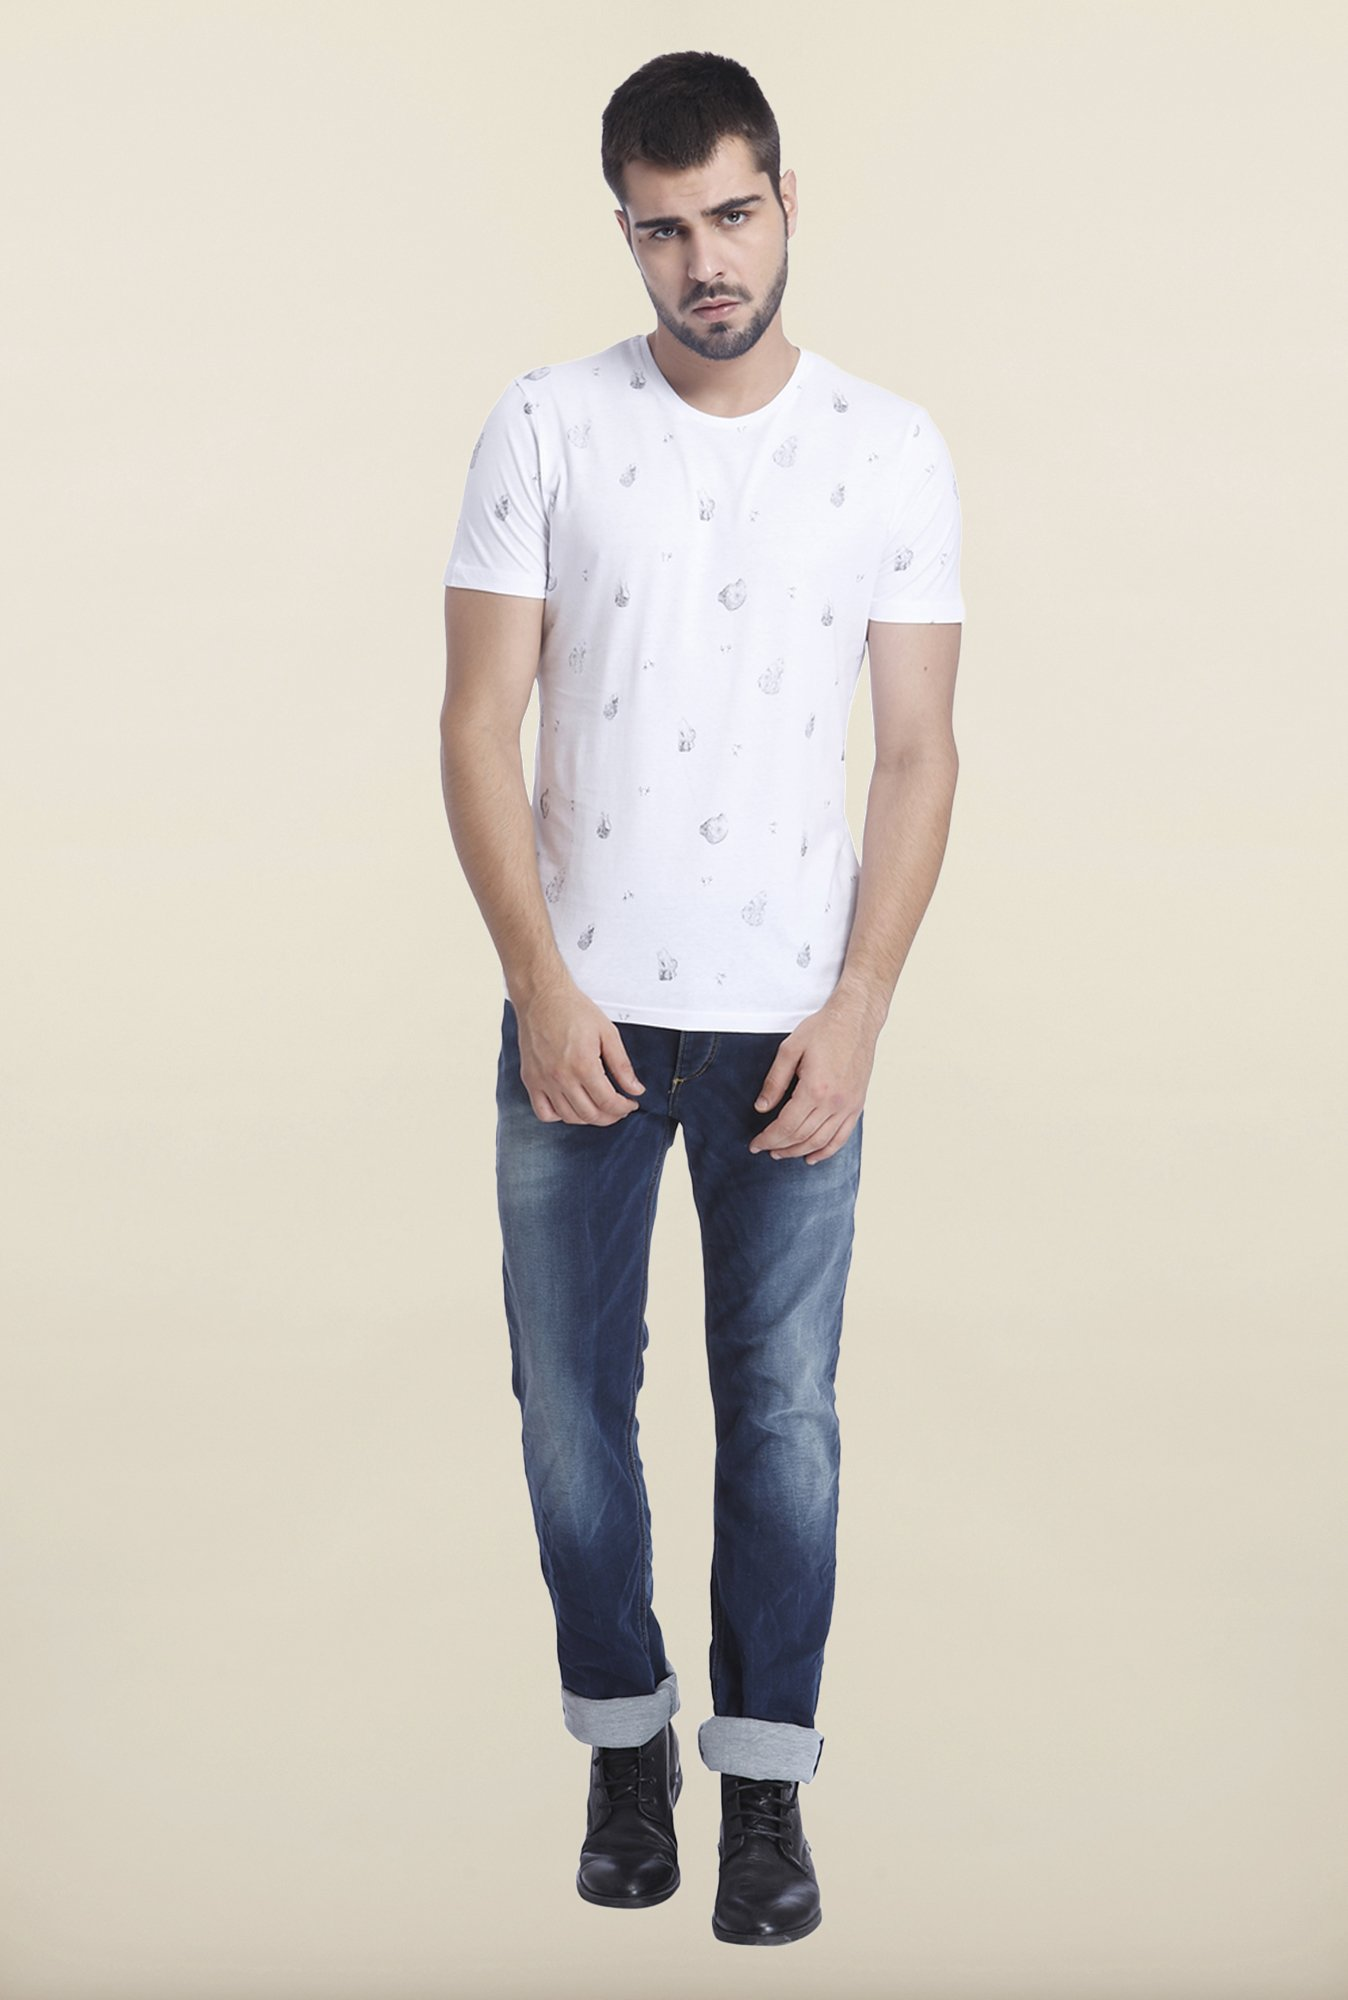 Jack & Jones White Casual Printed T Shirt